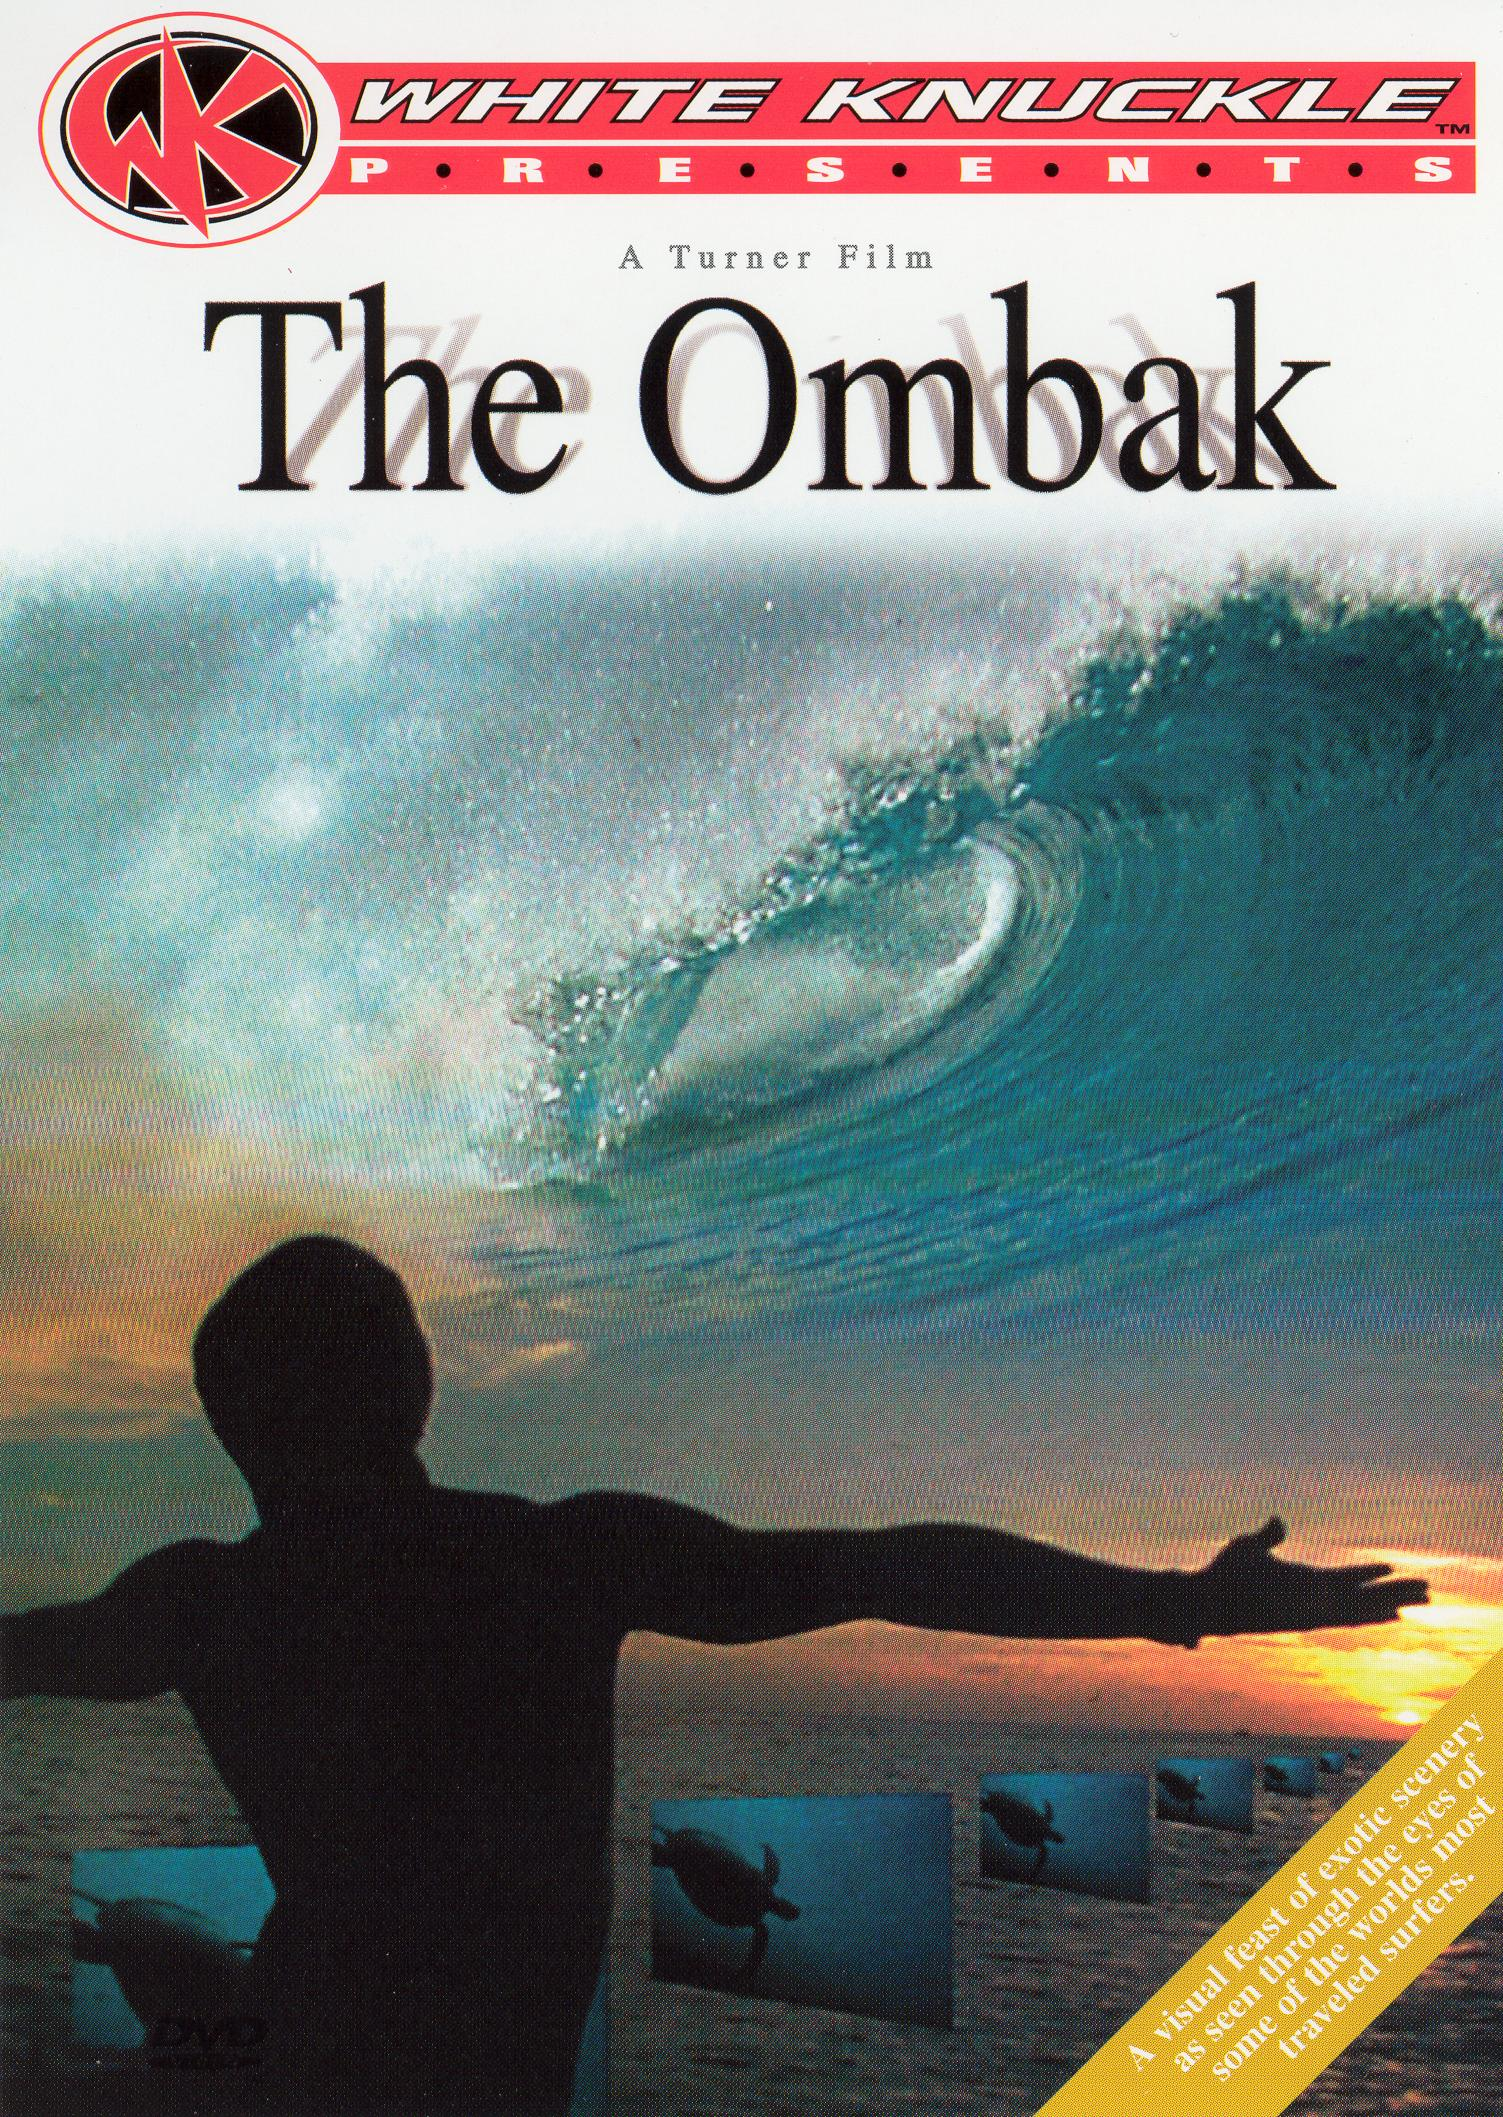 White Knuckle Extreme: The Ombak